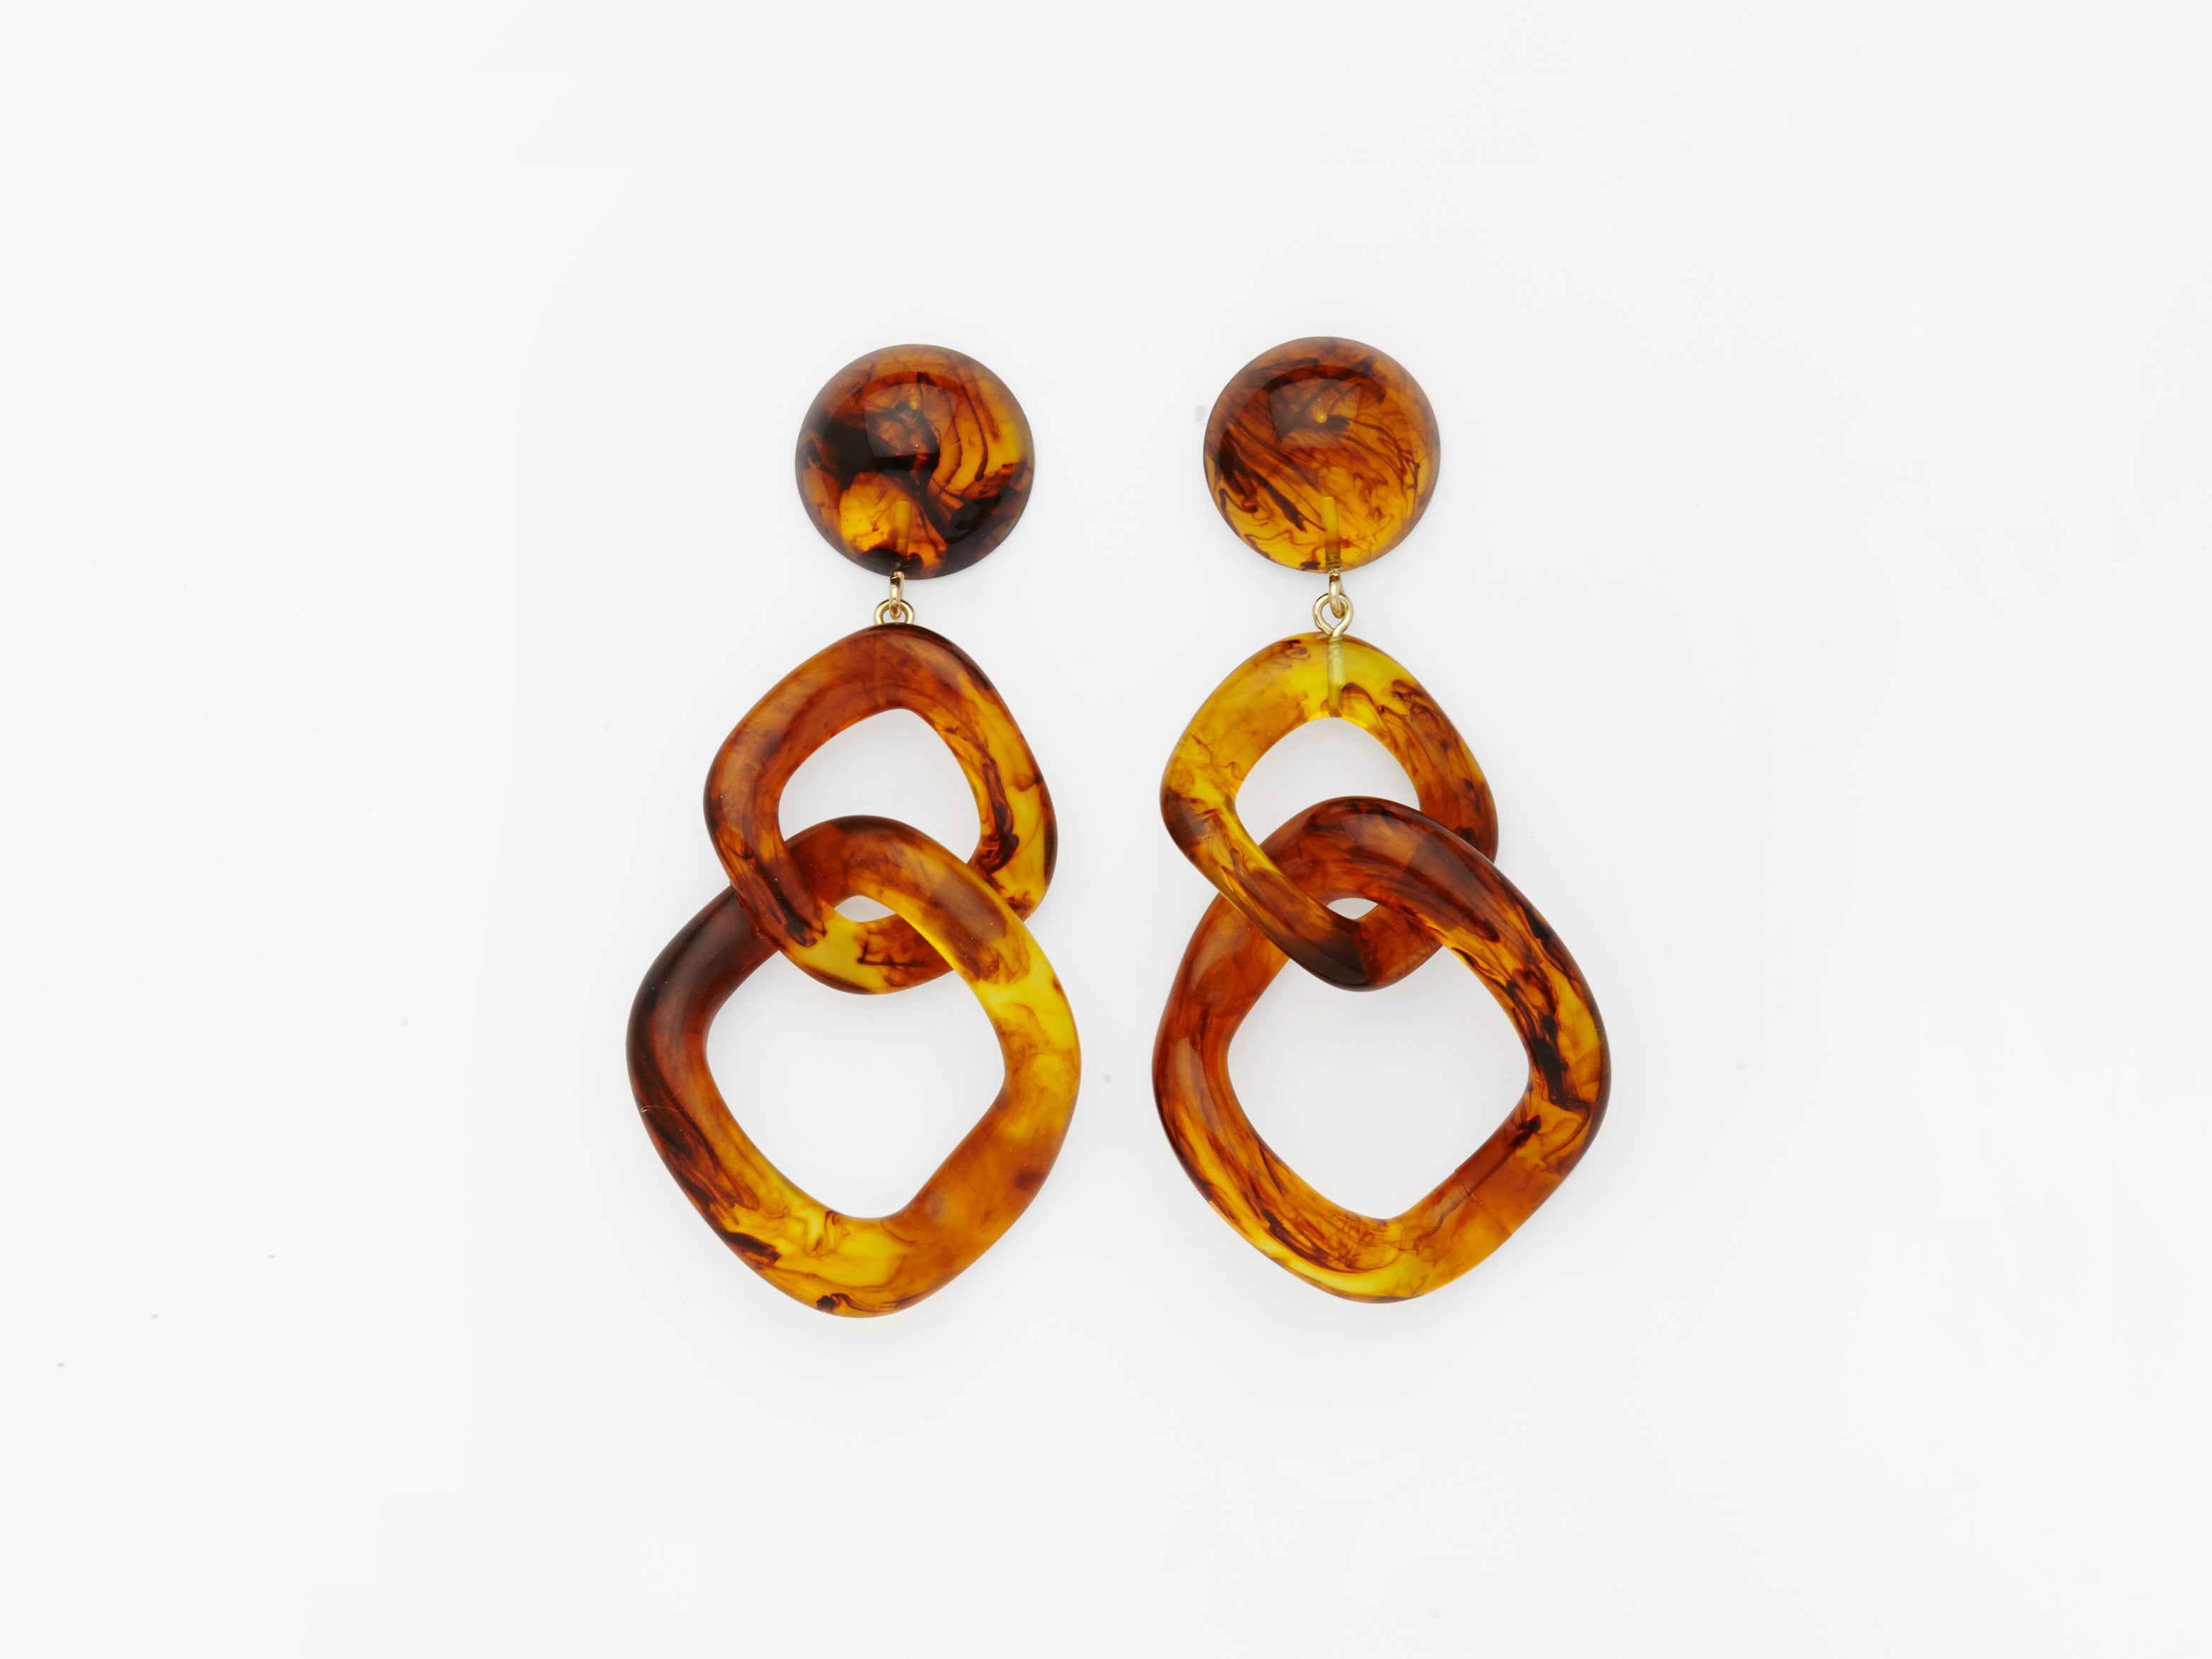 Tamara Earrings in Tortoise